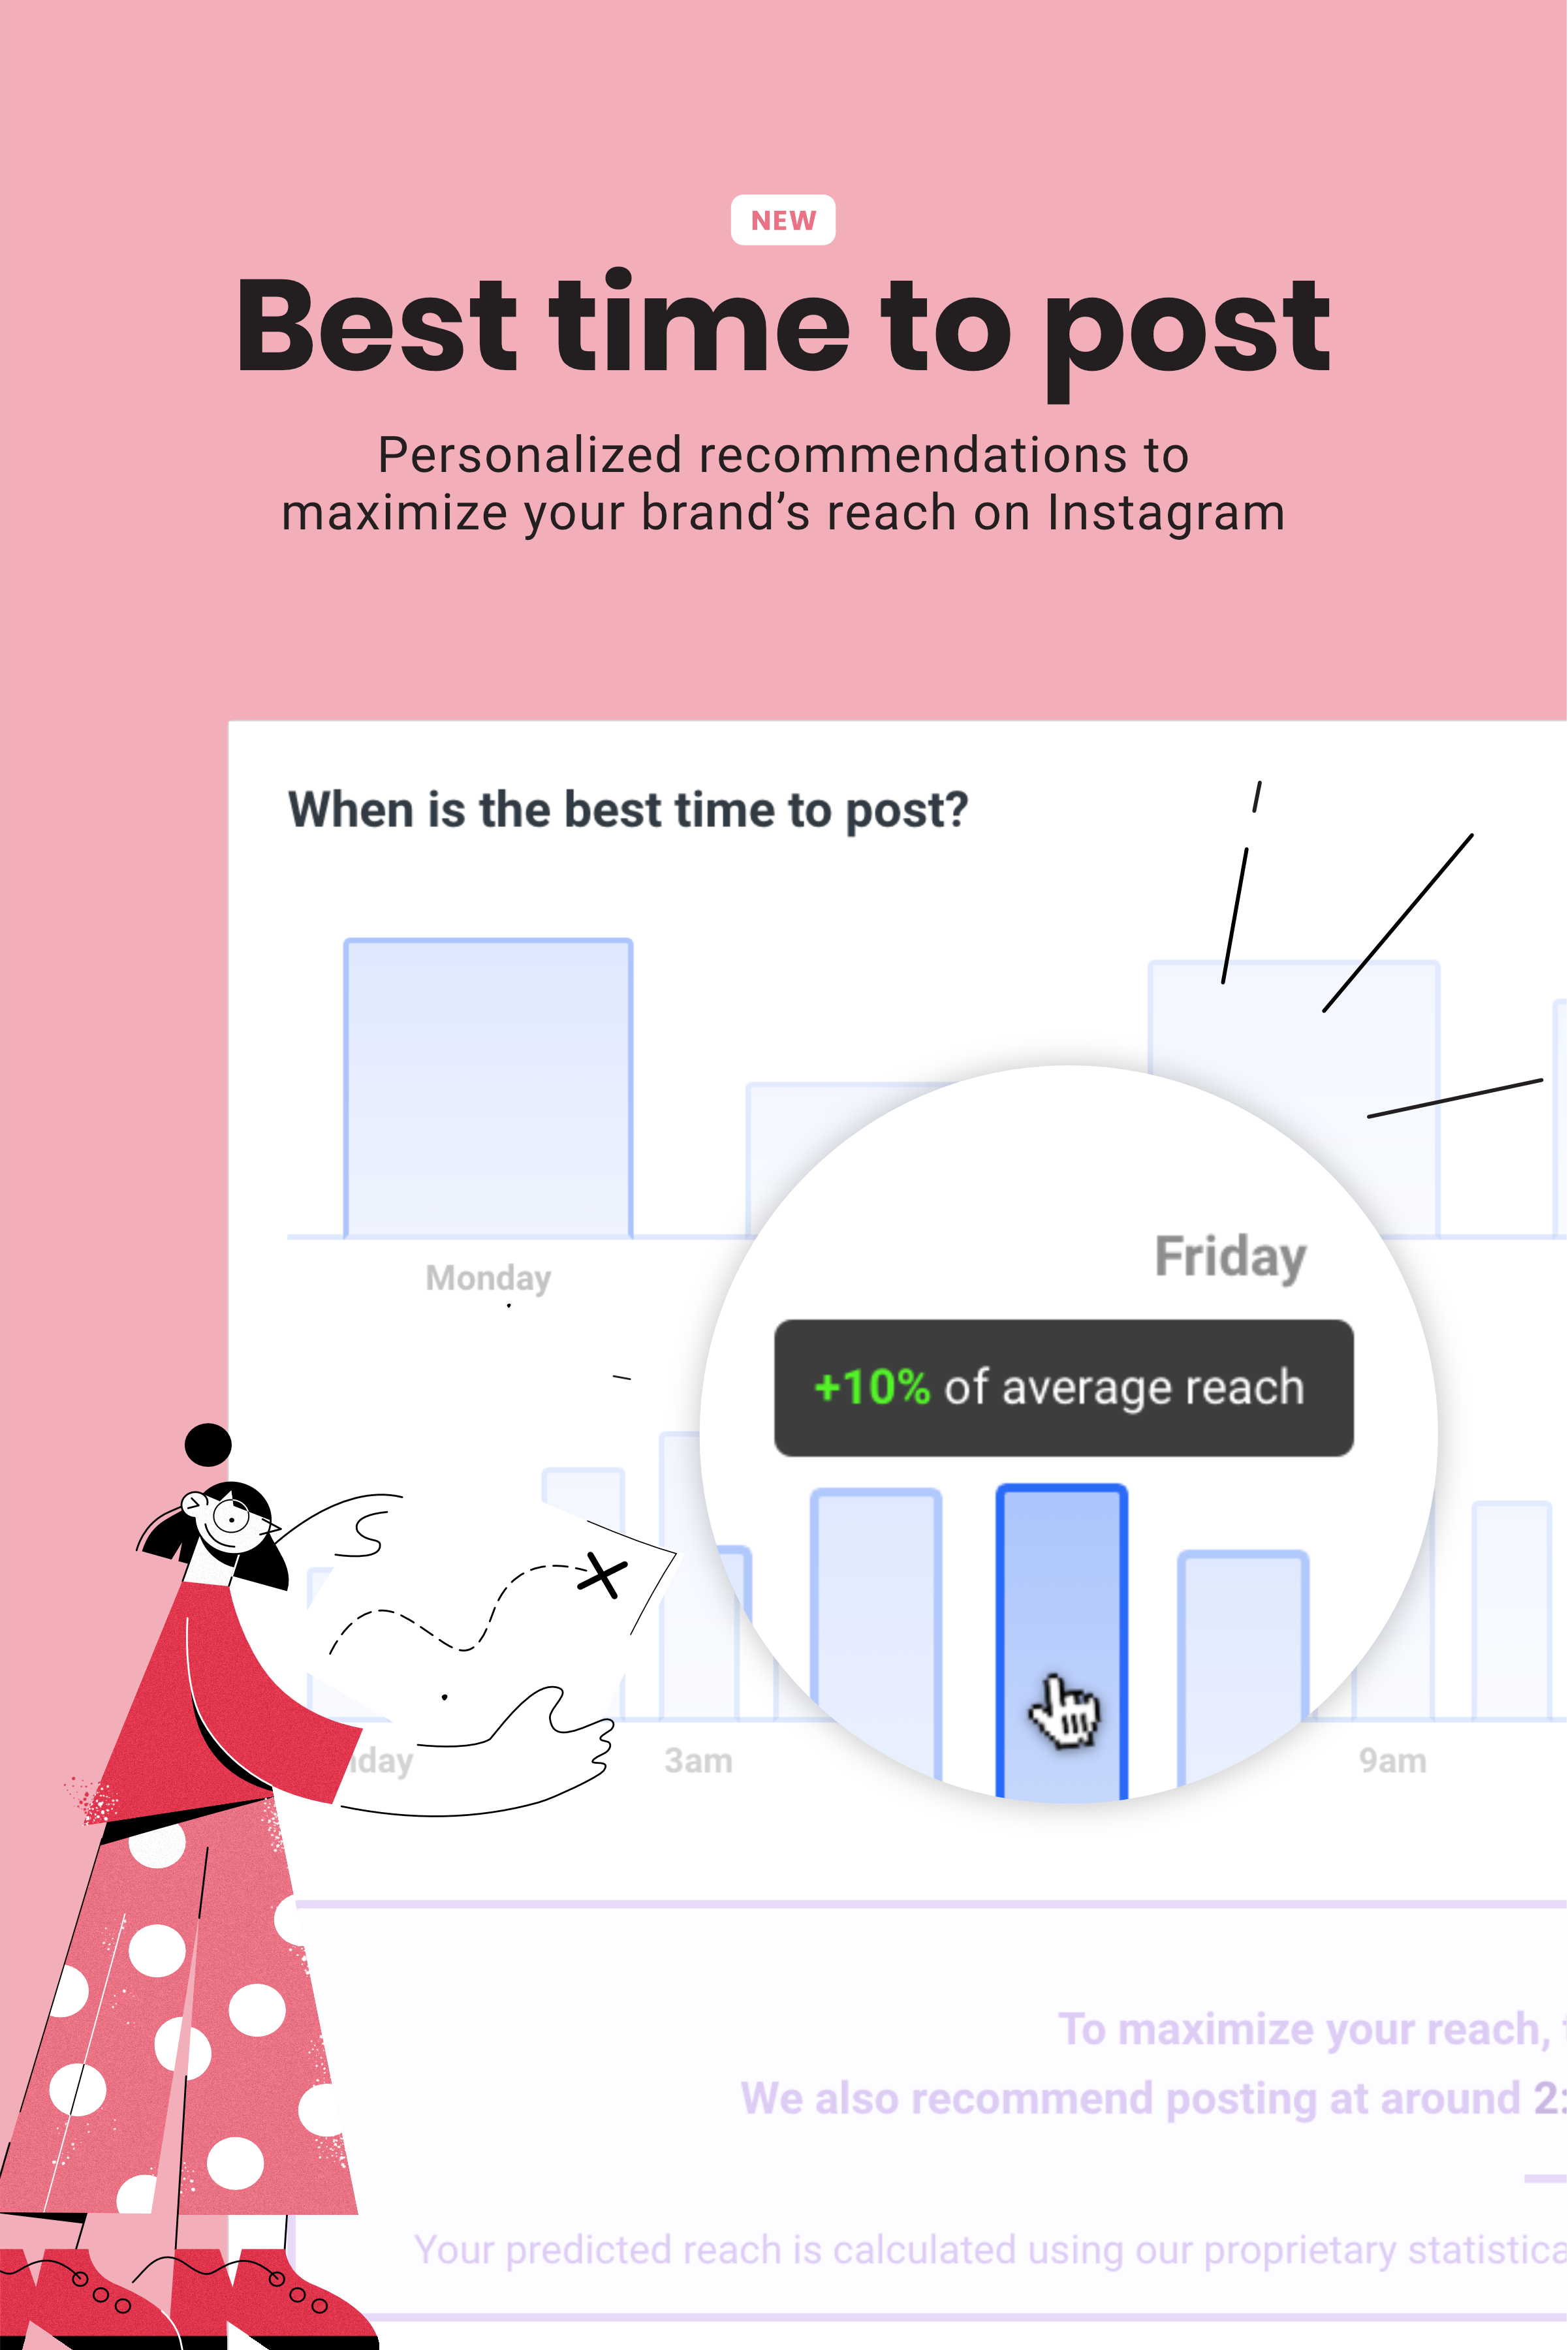 Introducing Best Time to Post Personalized